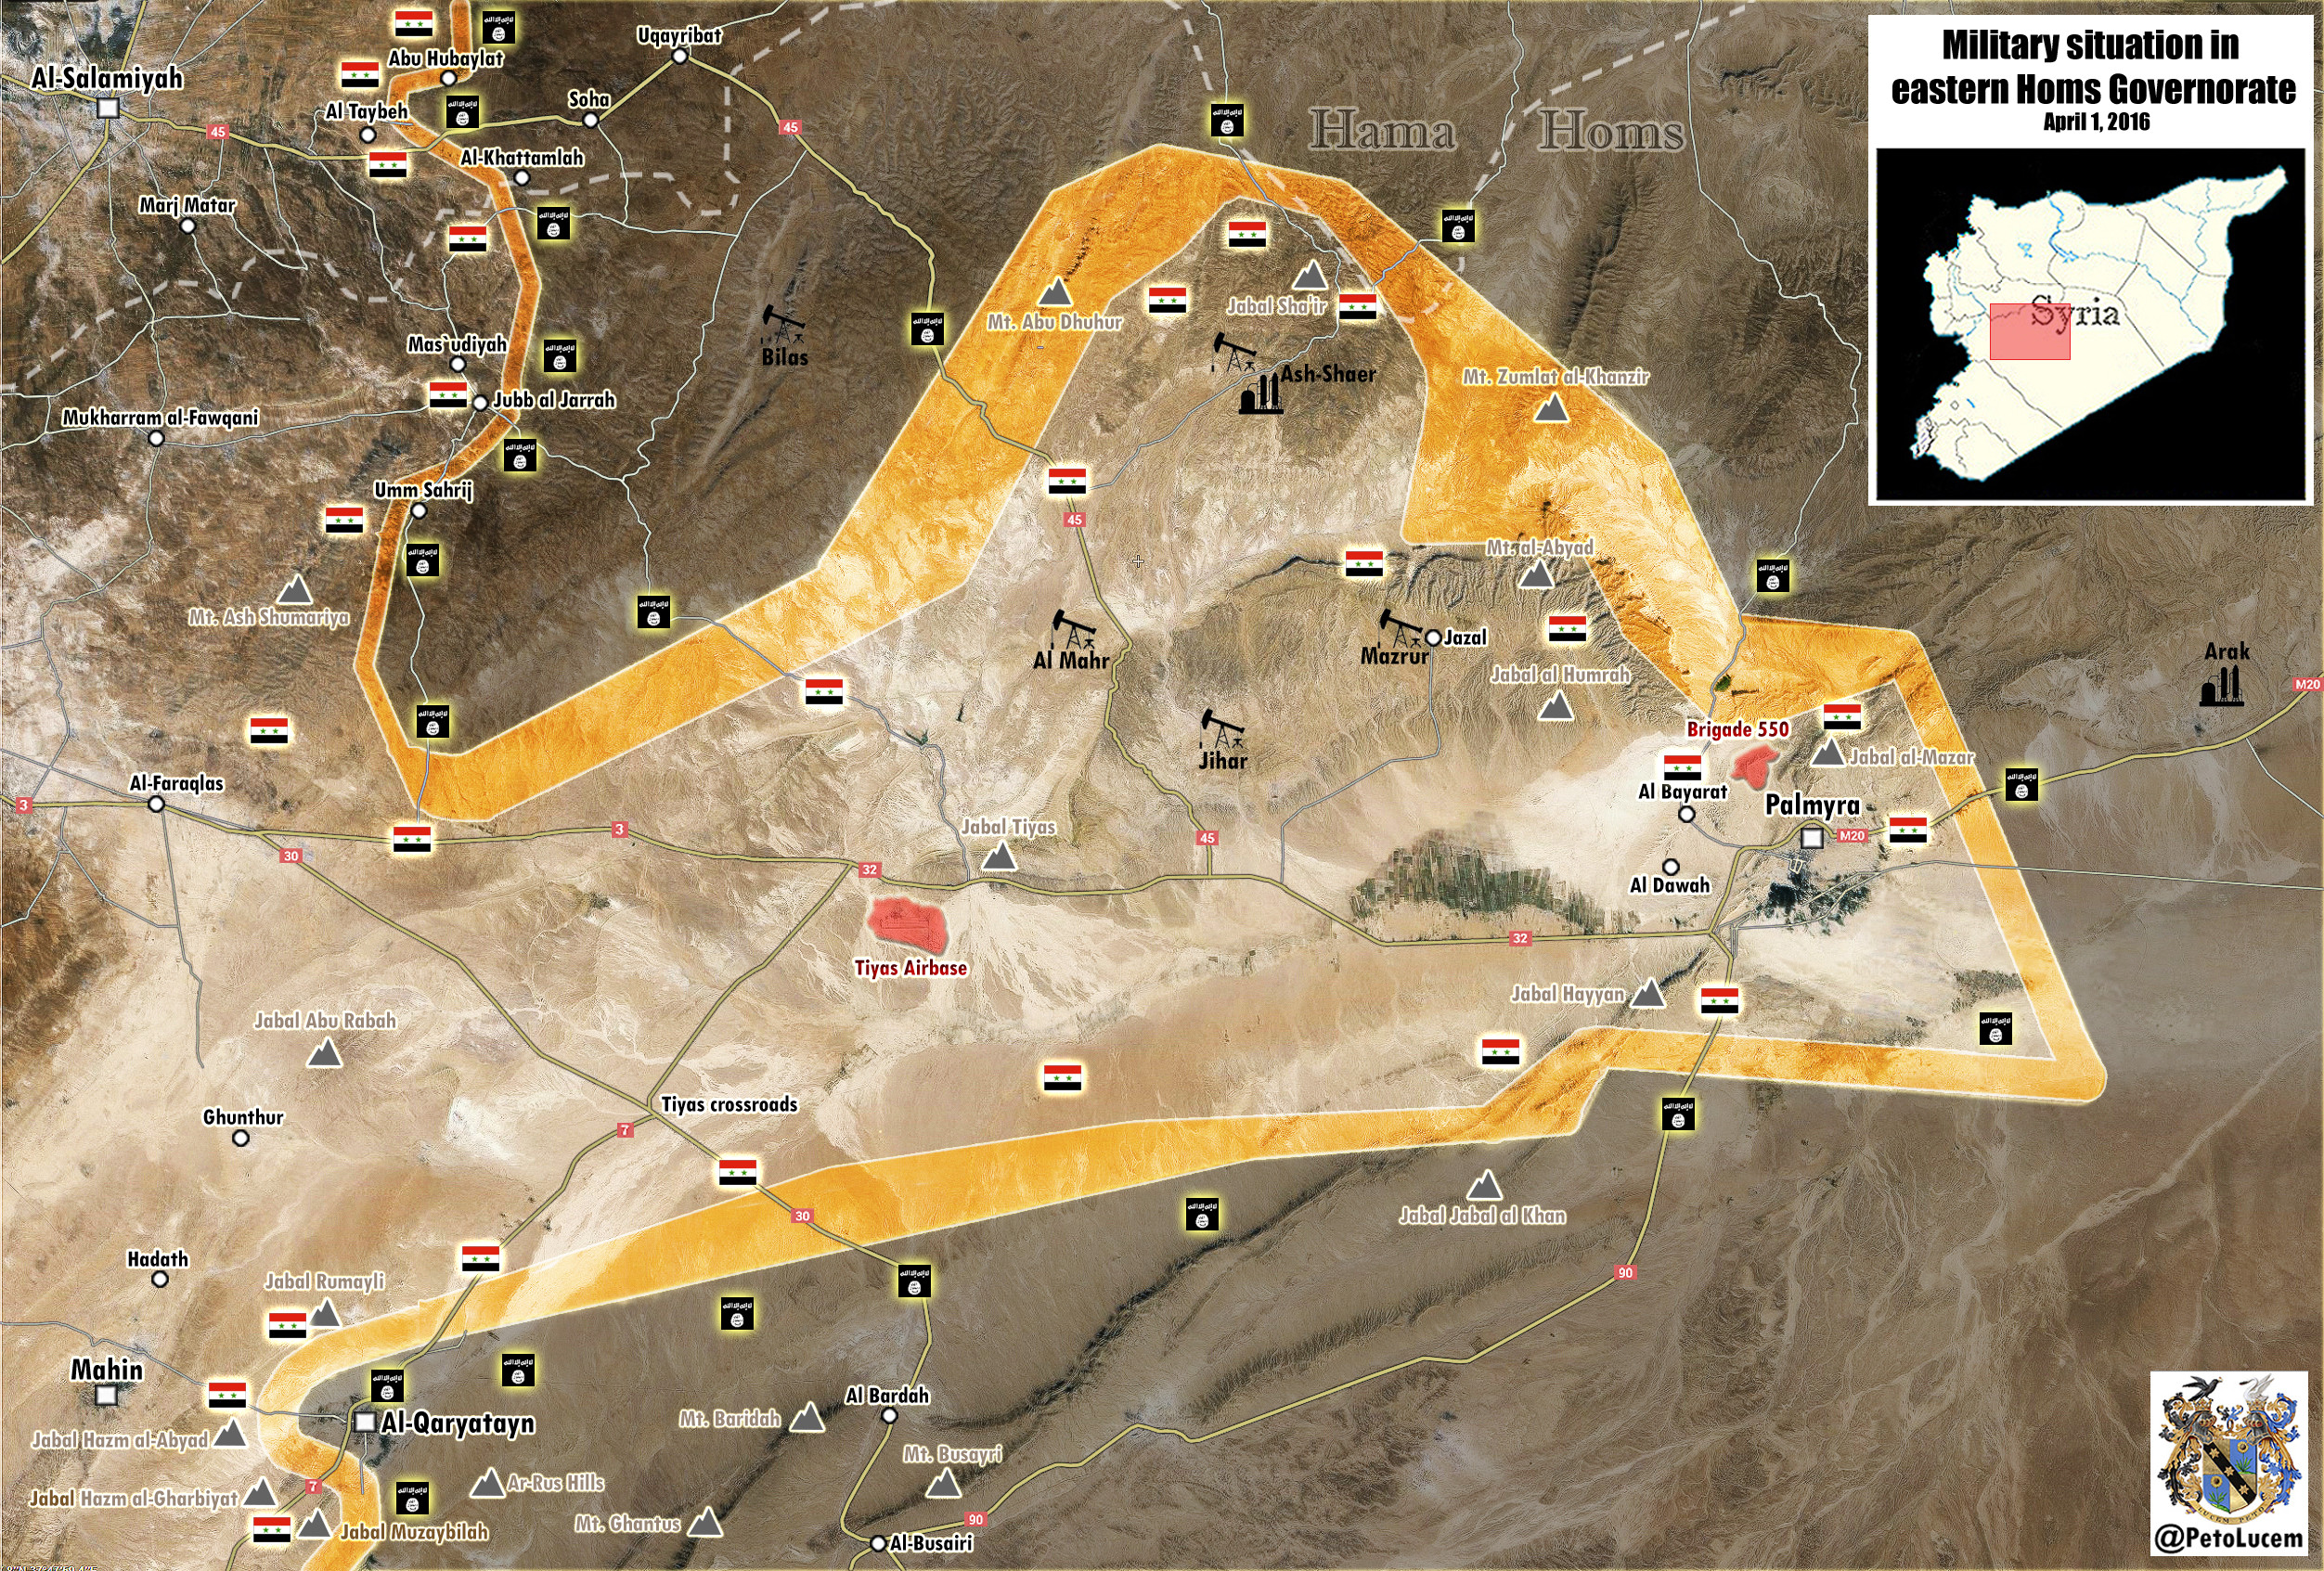 Palmyra to Deir Ezzor The Upcoming Campaign in Eastern Syria